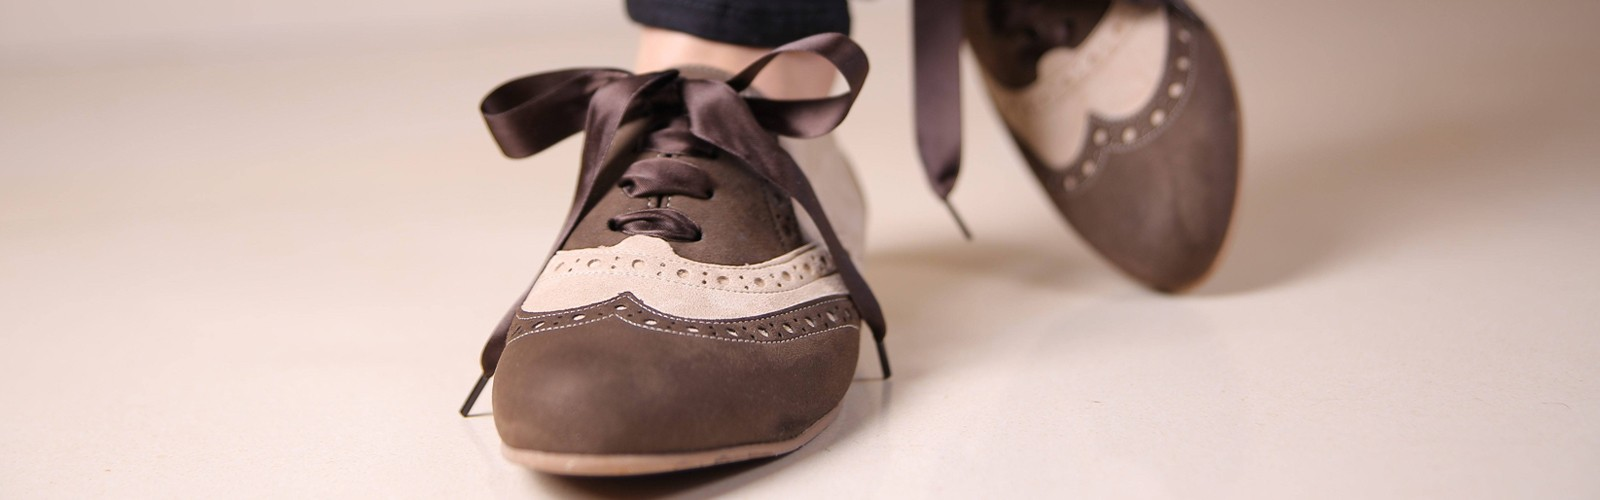 vegan lace-up shoes for woman